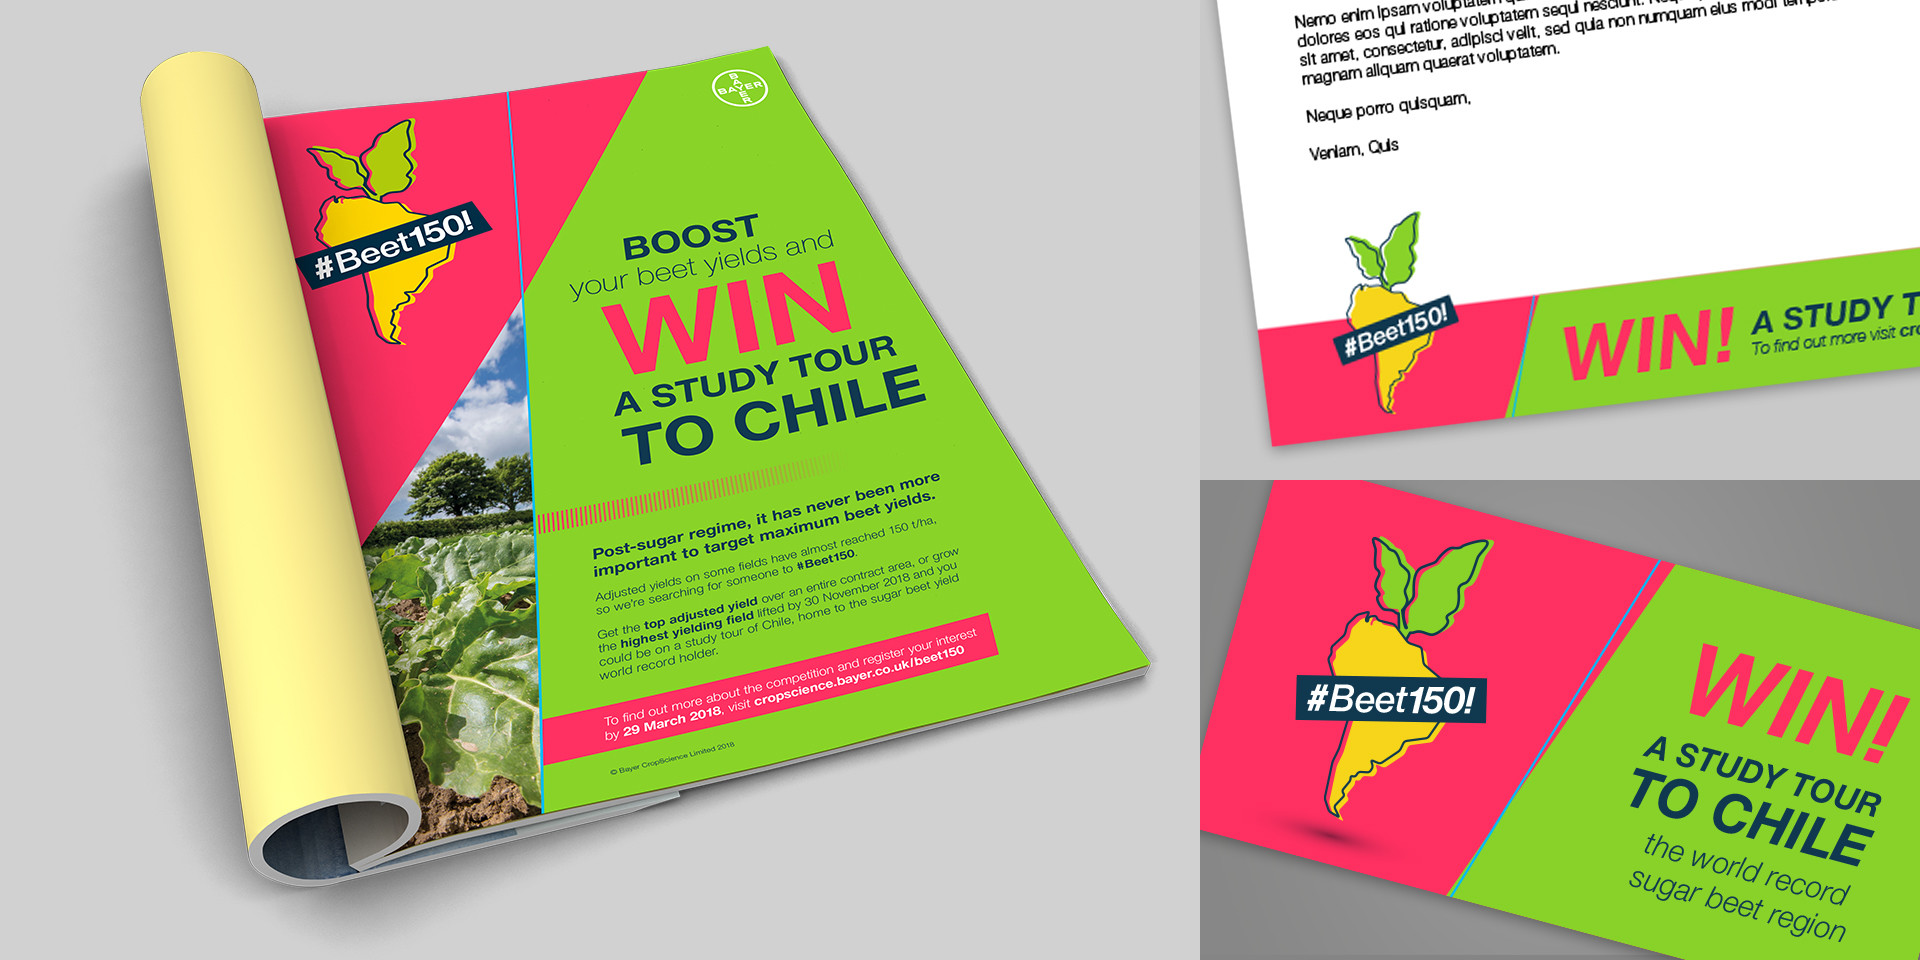 Beet150 study tour to chile